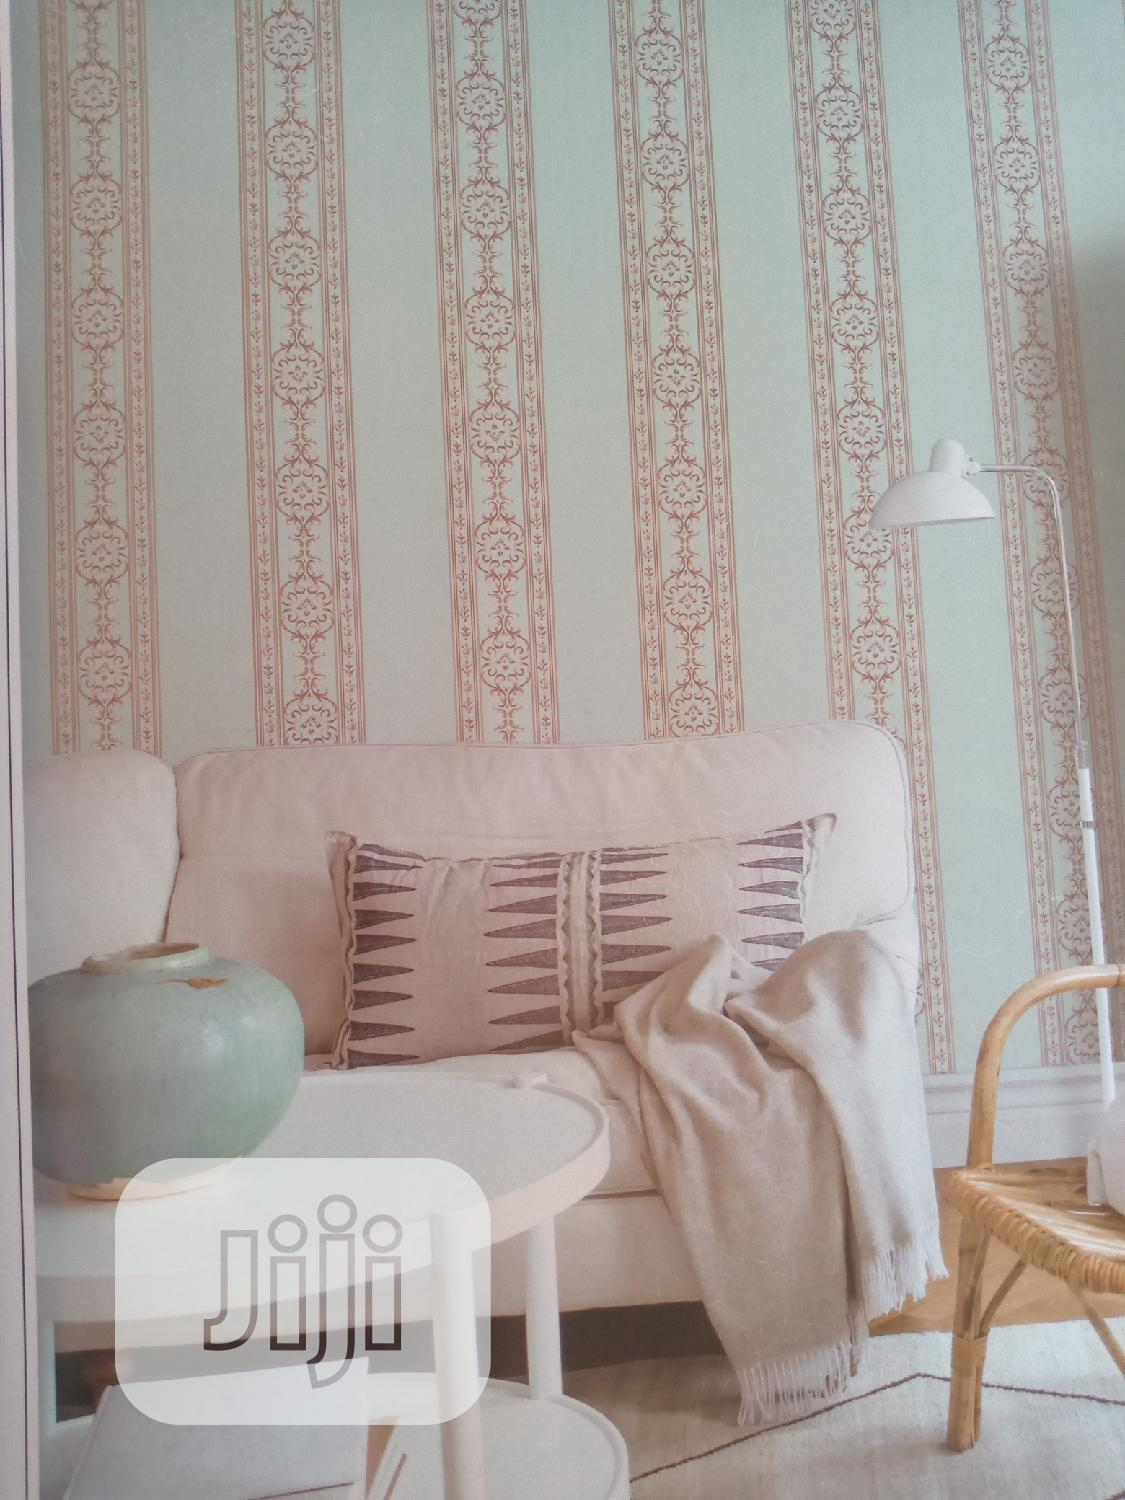 Wallpaper Good Design Wholesale Price | Home Accessories for sale in Abakaliki, Ebonyi State, Nigeria